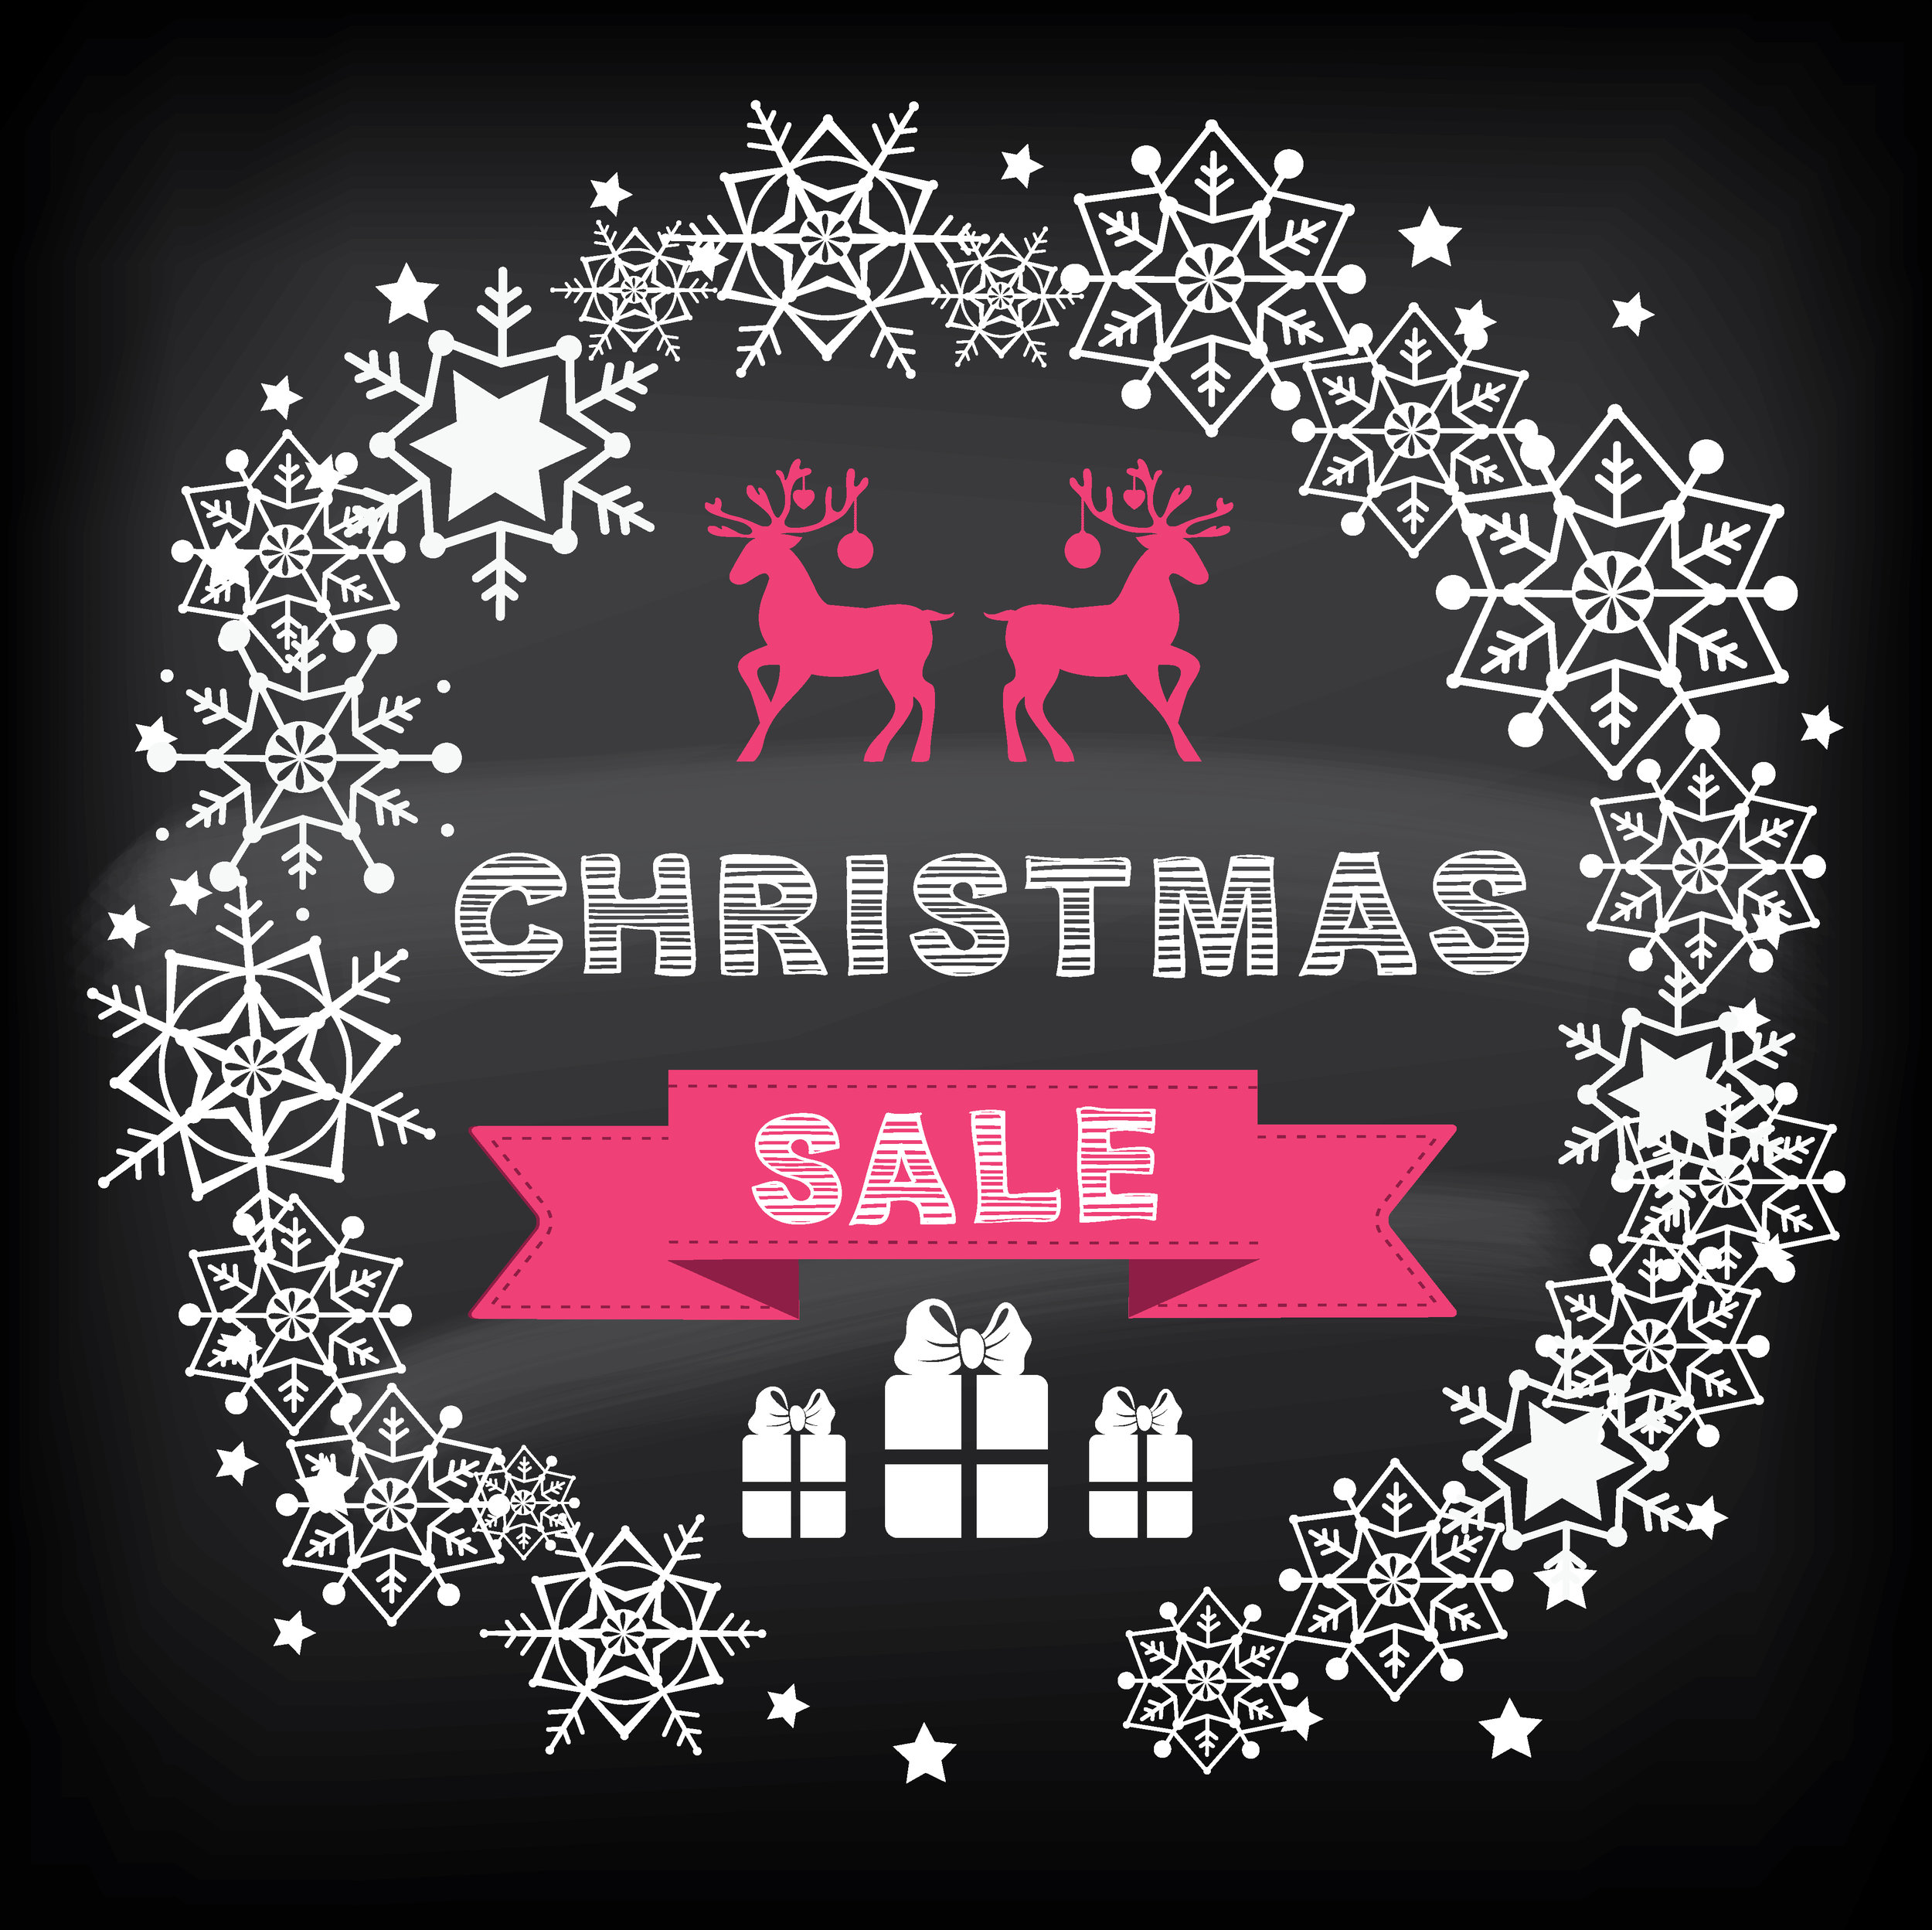 Christmas Sale! - Mondays: $35 off all Sew InsTuesdays: $20 off Quick Weaves & $15 off PonytailsWednesdays: $10 off natural stylesThursdays: 20% ColorFriday & Saturday: 10% off any service ( New clients only